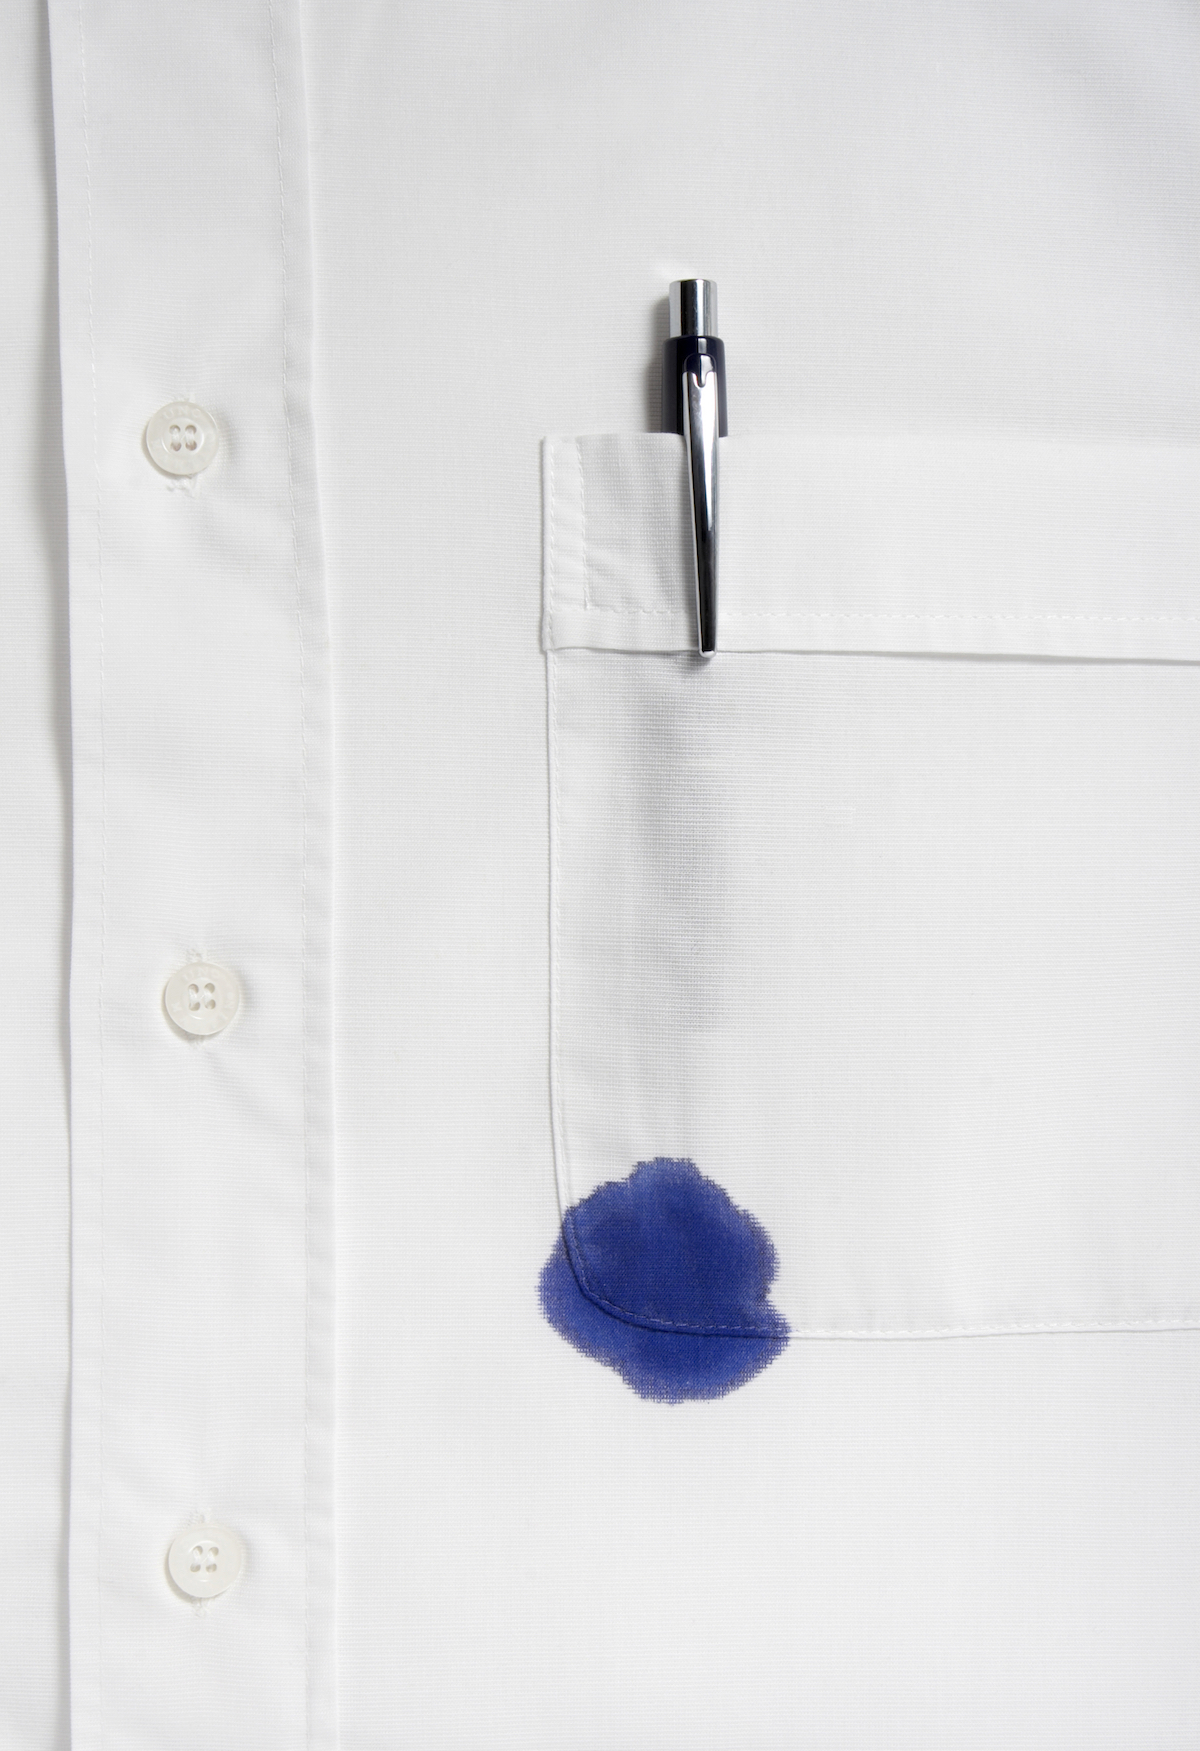 ruined shirt and and leaking pen